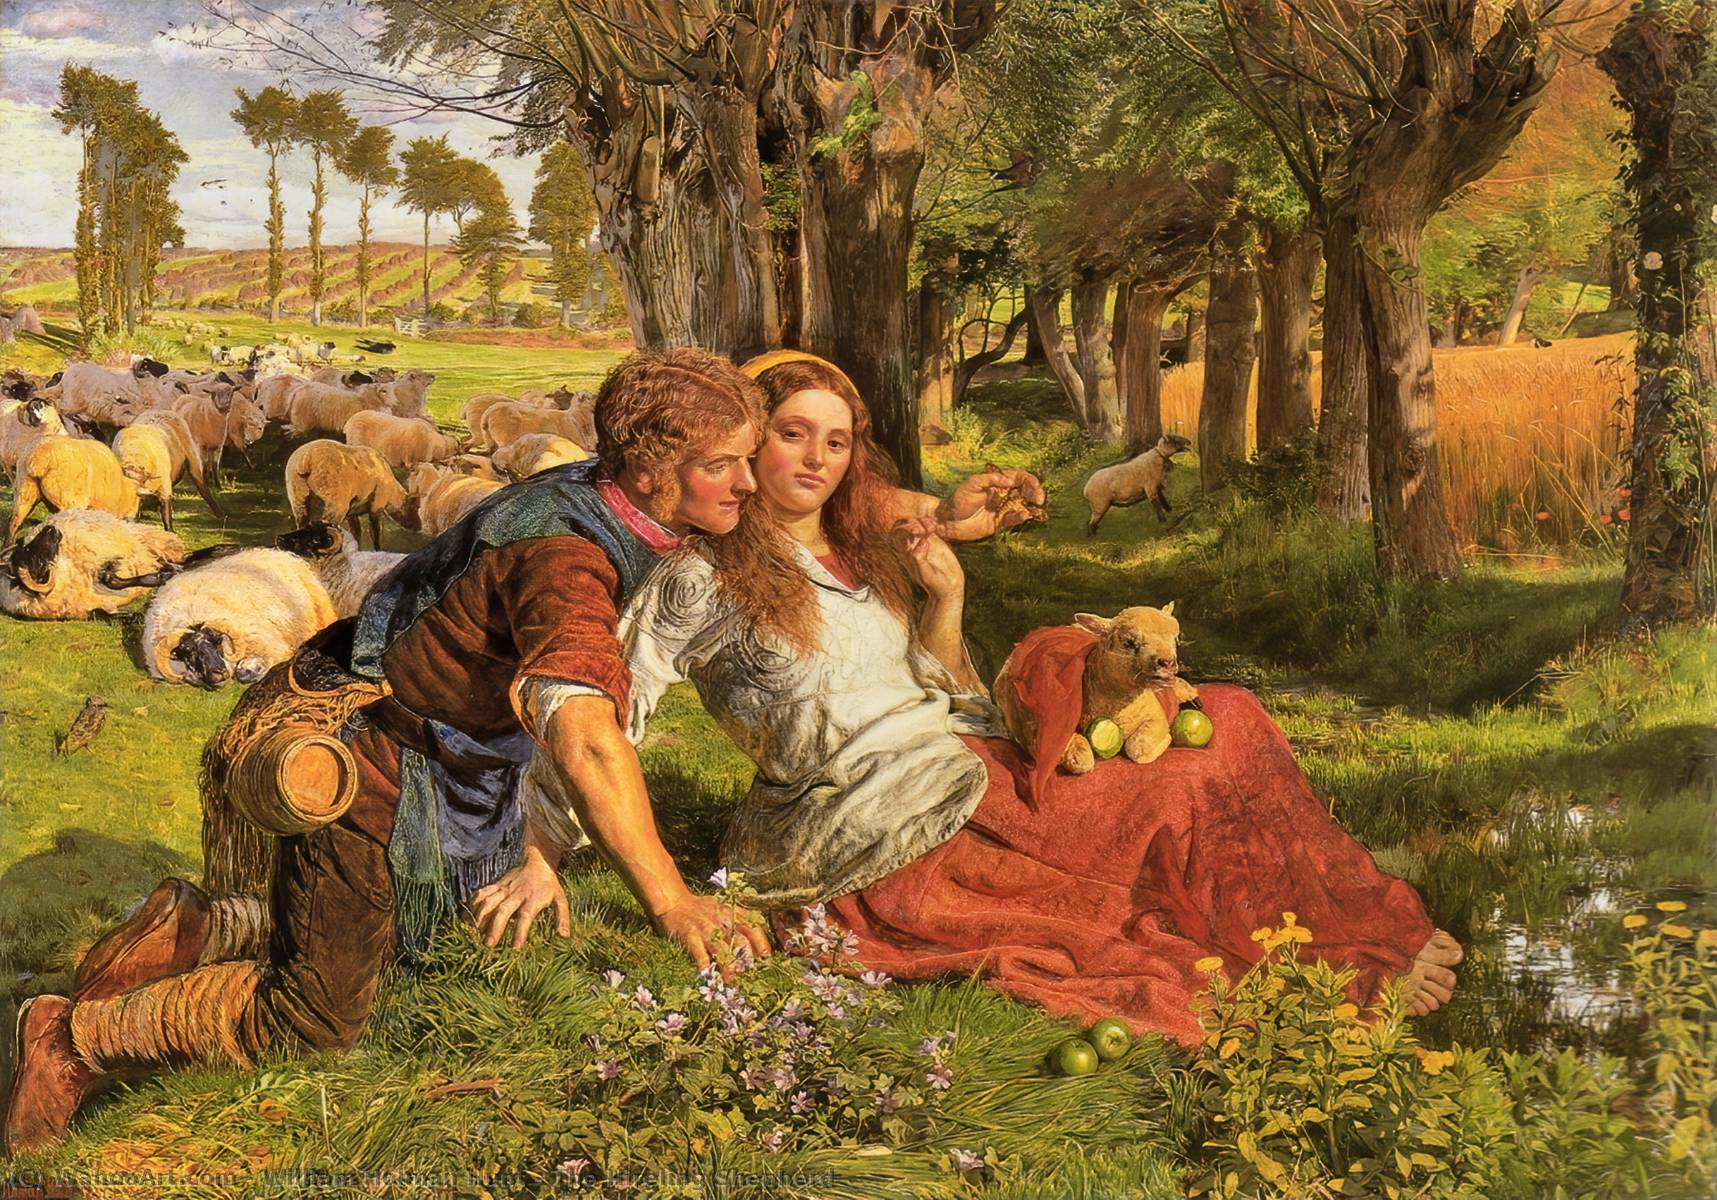 Achat Reproductions D'art | Le mercenaire Shepherd, 1851 de William Holman Hunt (1827-1910, United Kingdom) | WahooArt.com